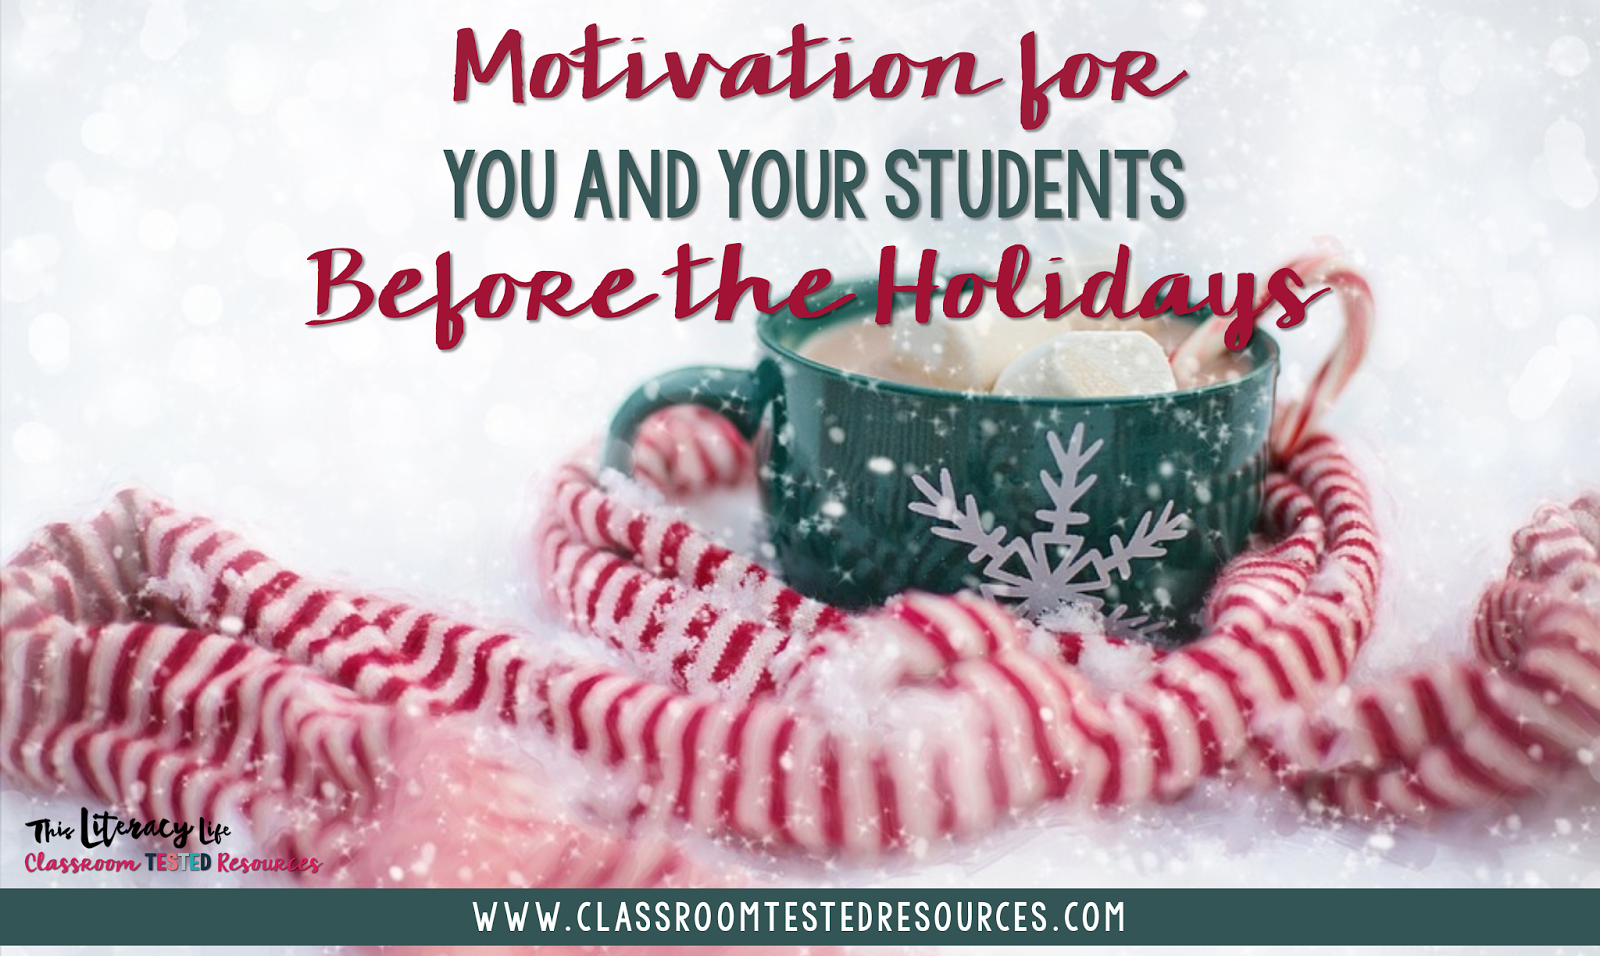 This time of the school year can be tough for everyone! Make it light and fun with these simple motivating ideas for before winter break!